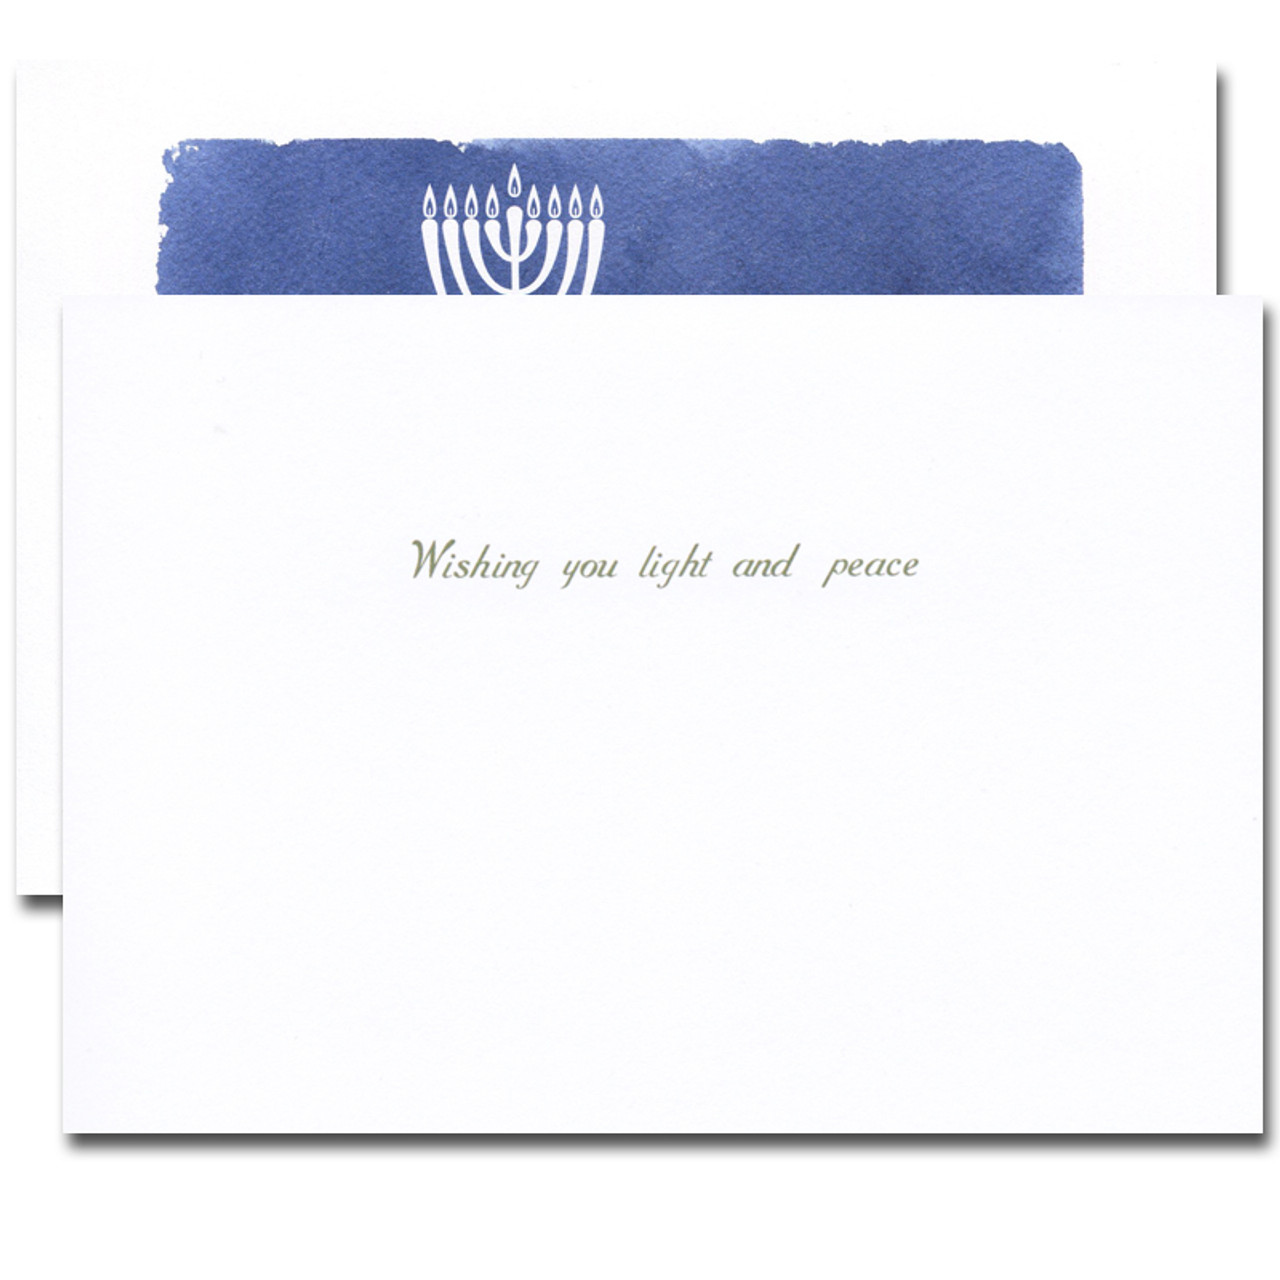 Hanukkah Card - Light and Peace inside reads: Wishing you light and peace